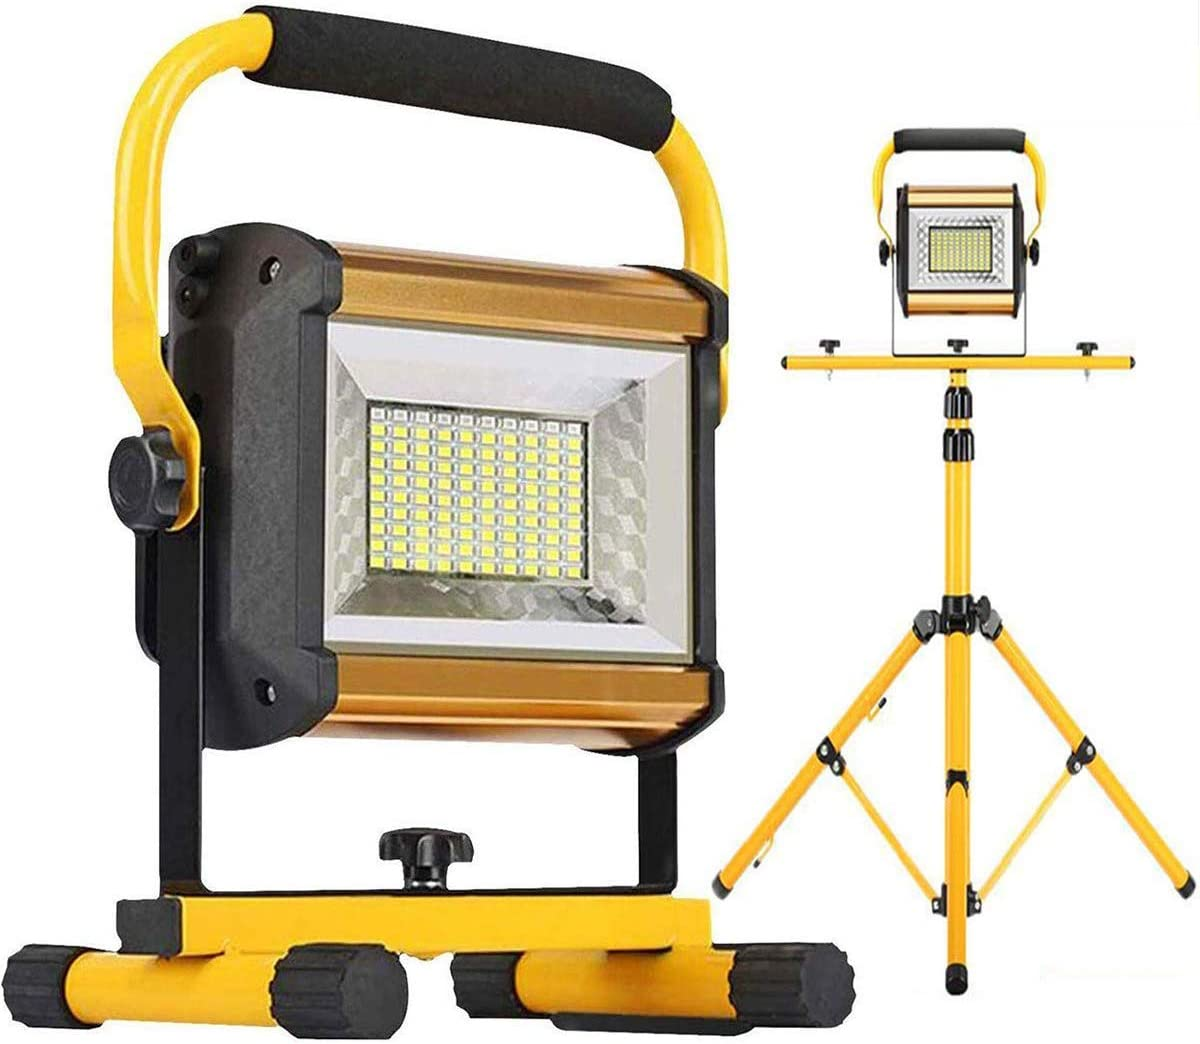 Portable LED Lights products for sale